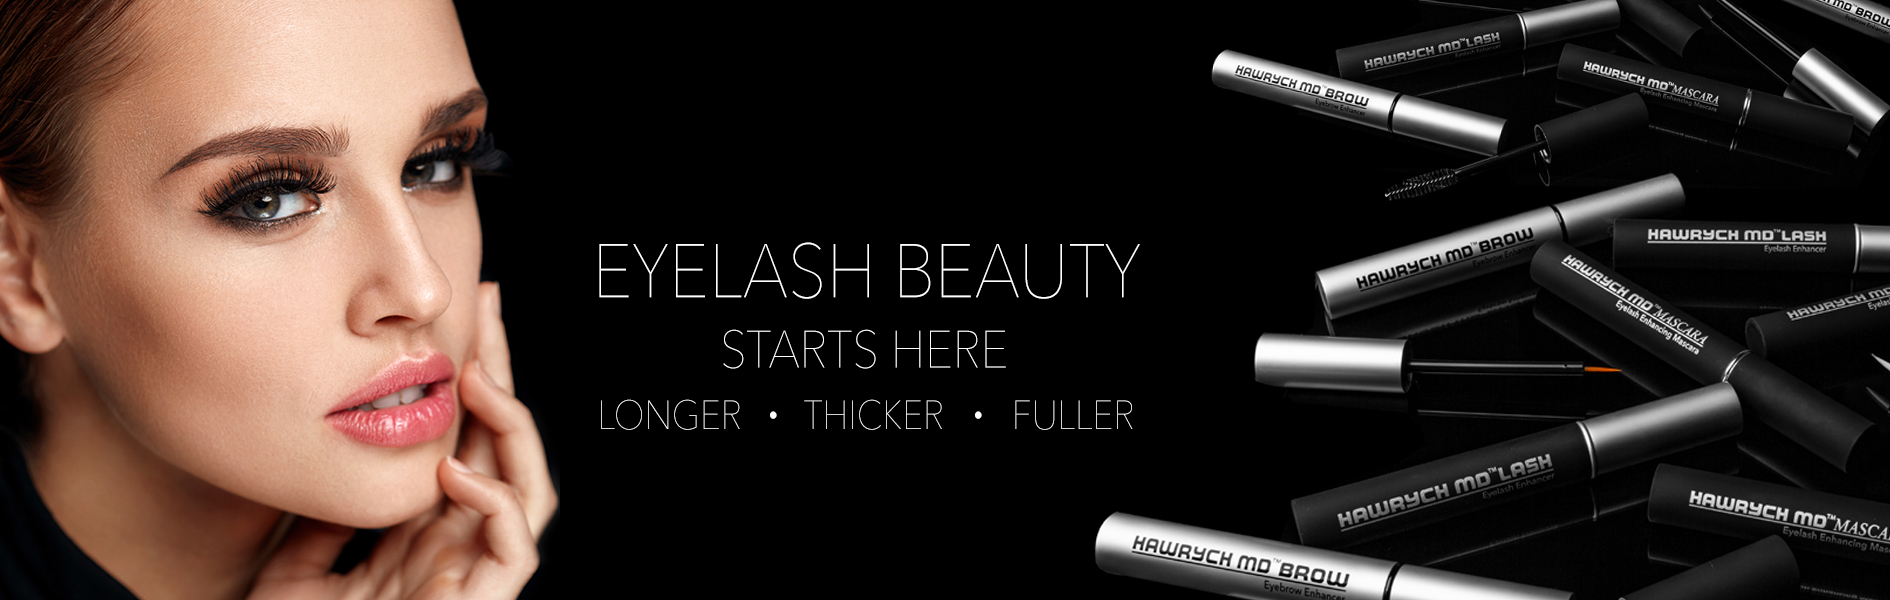 hawrych md eyelash brow enhancing serums mascara